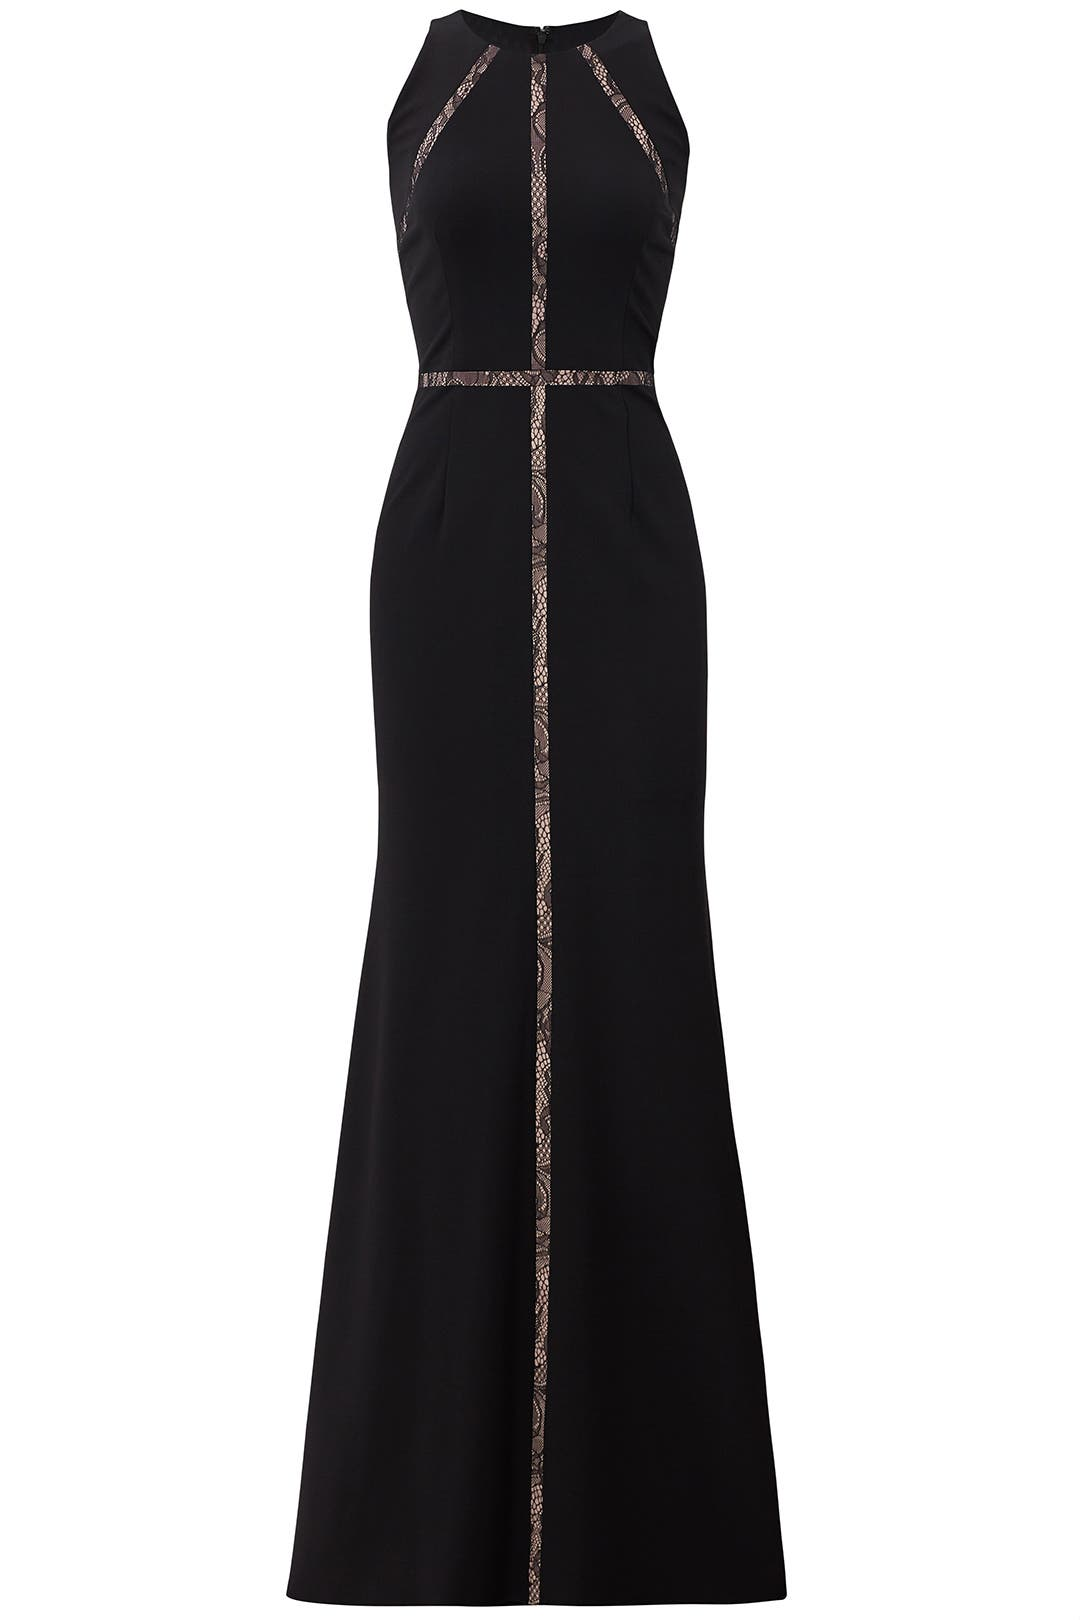 Black Insert Lace Gown by Adrianna Papell for $40 - $70 | Rent the ...